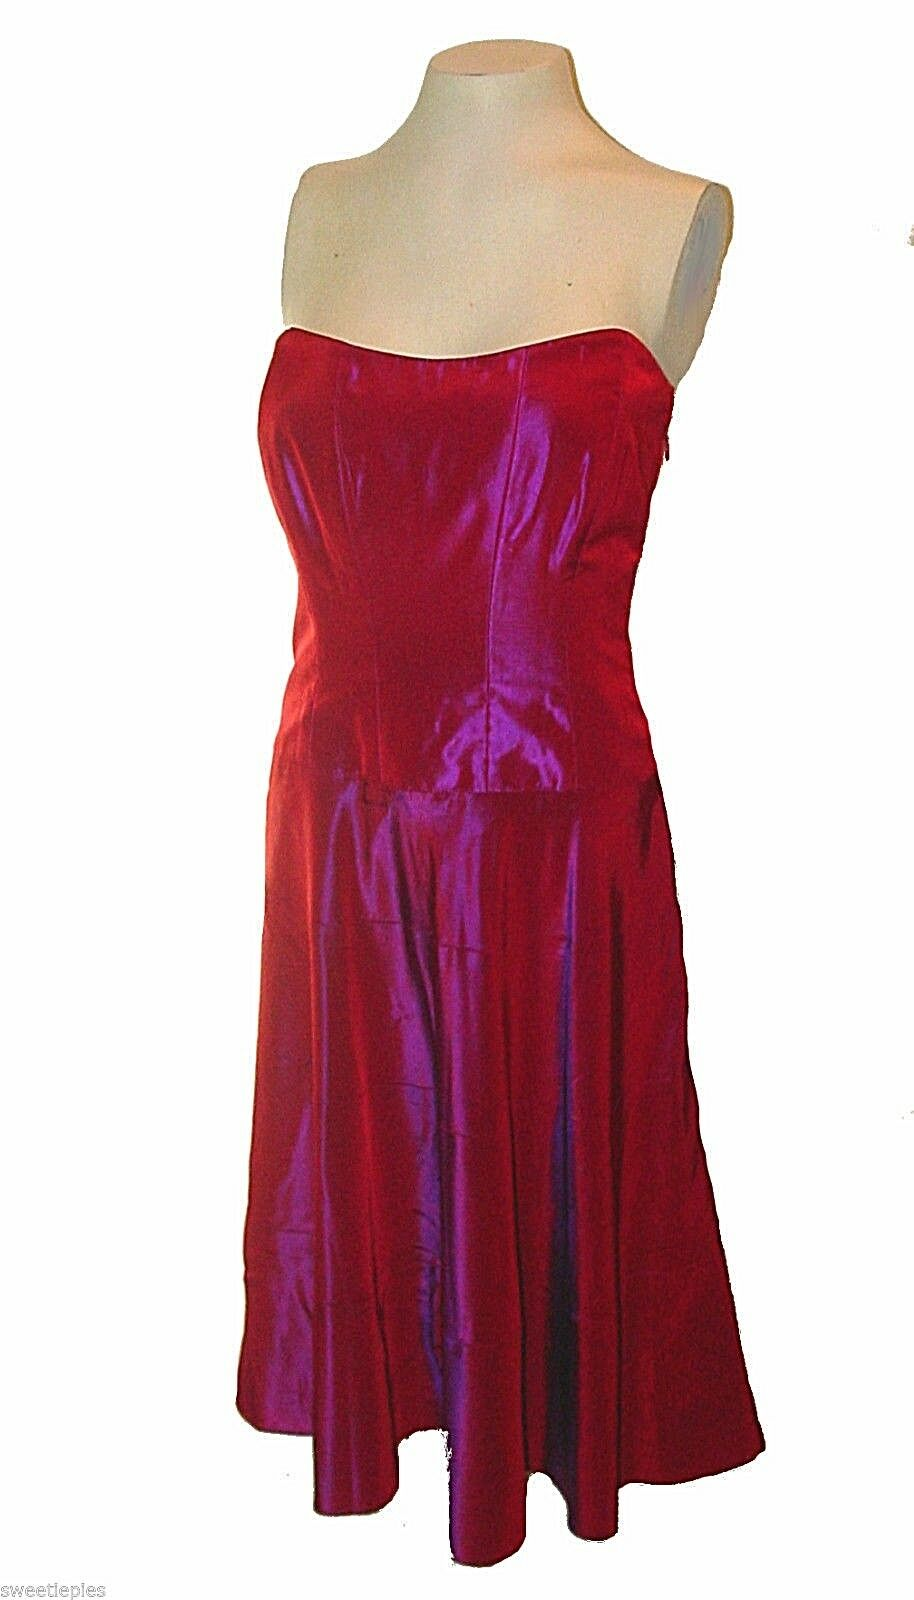 Dress, Nicole Miller New York, Red Iridescent Corset-Top Lace-up ...